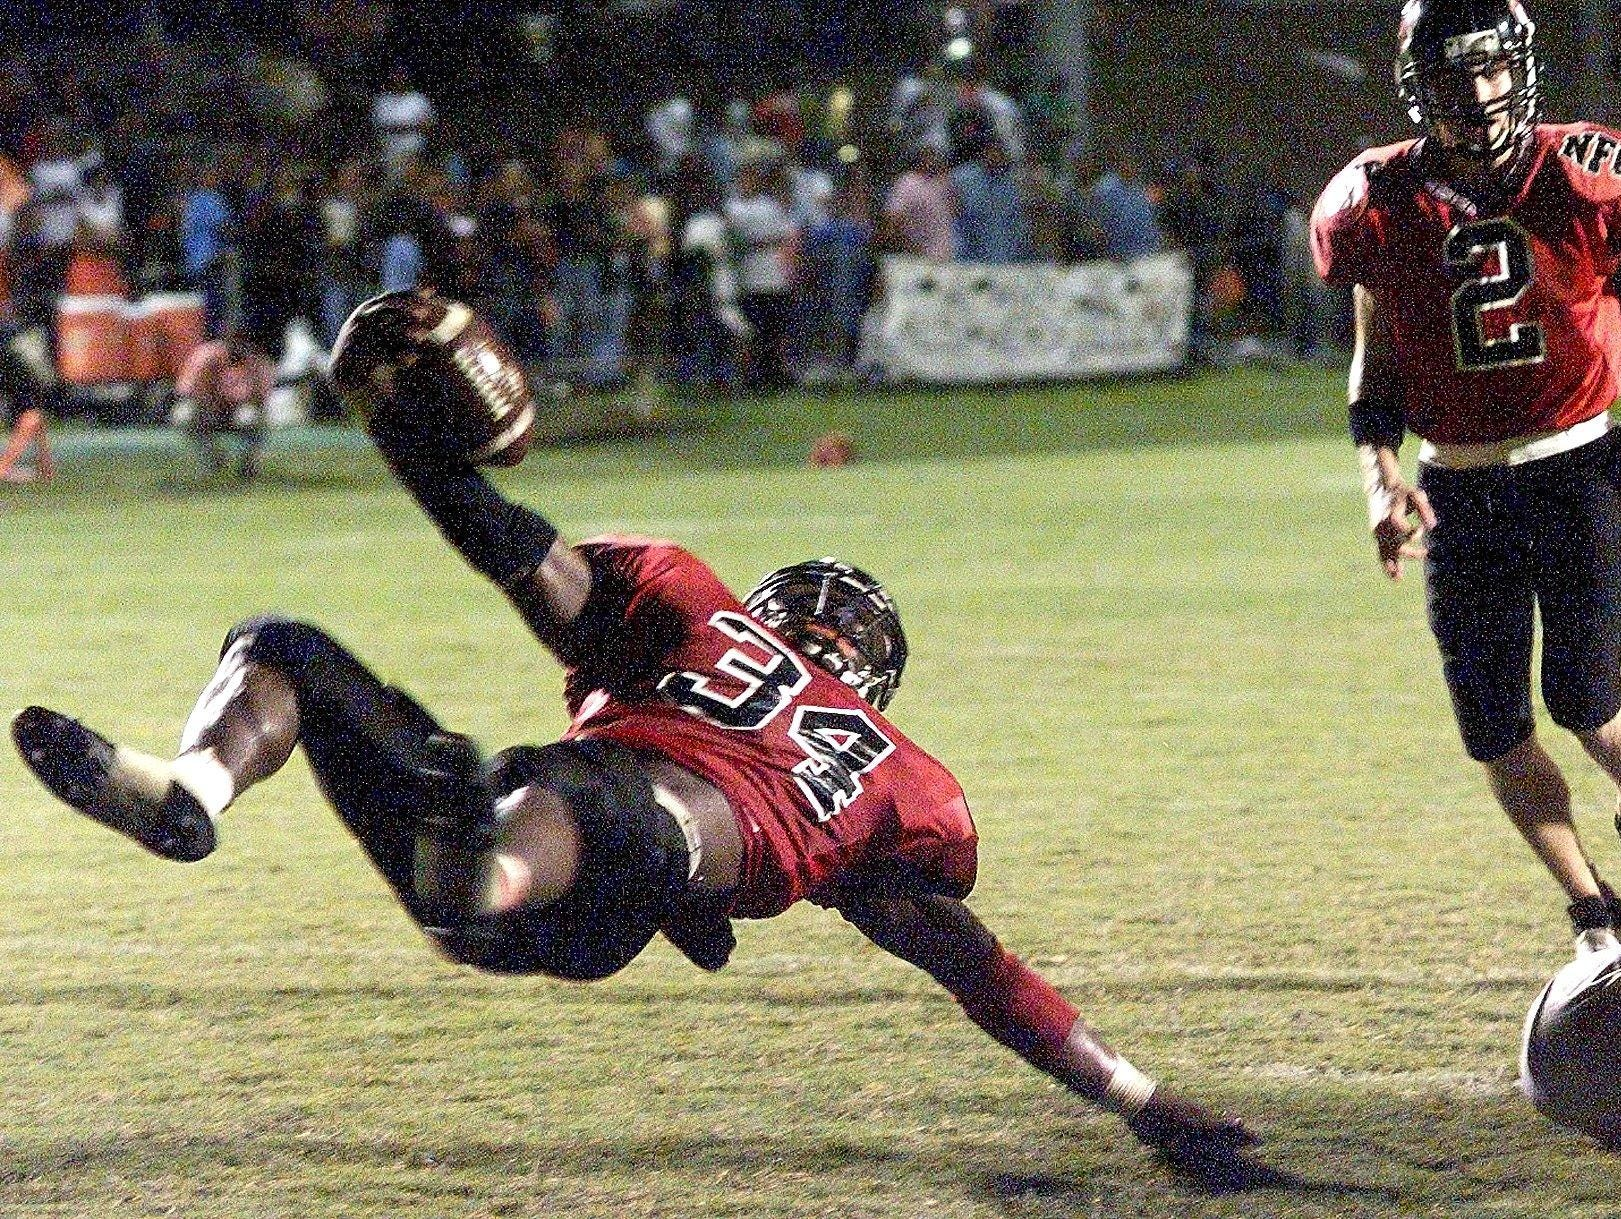 NFC running back Ernie Sims flips towards the endzone in the first half of a game in 2001.